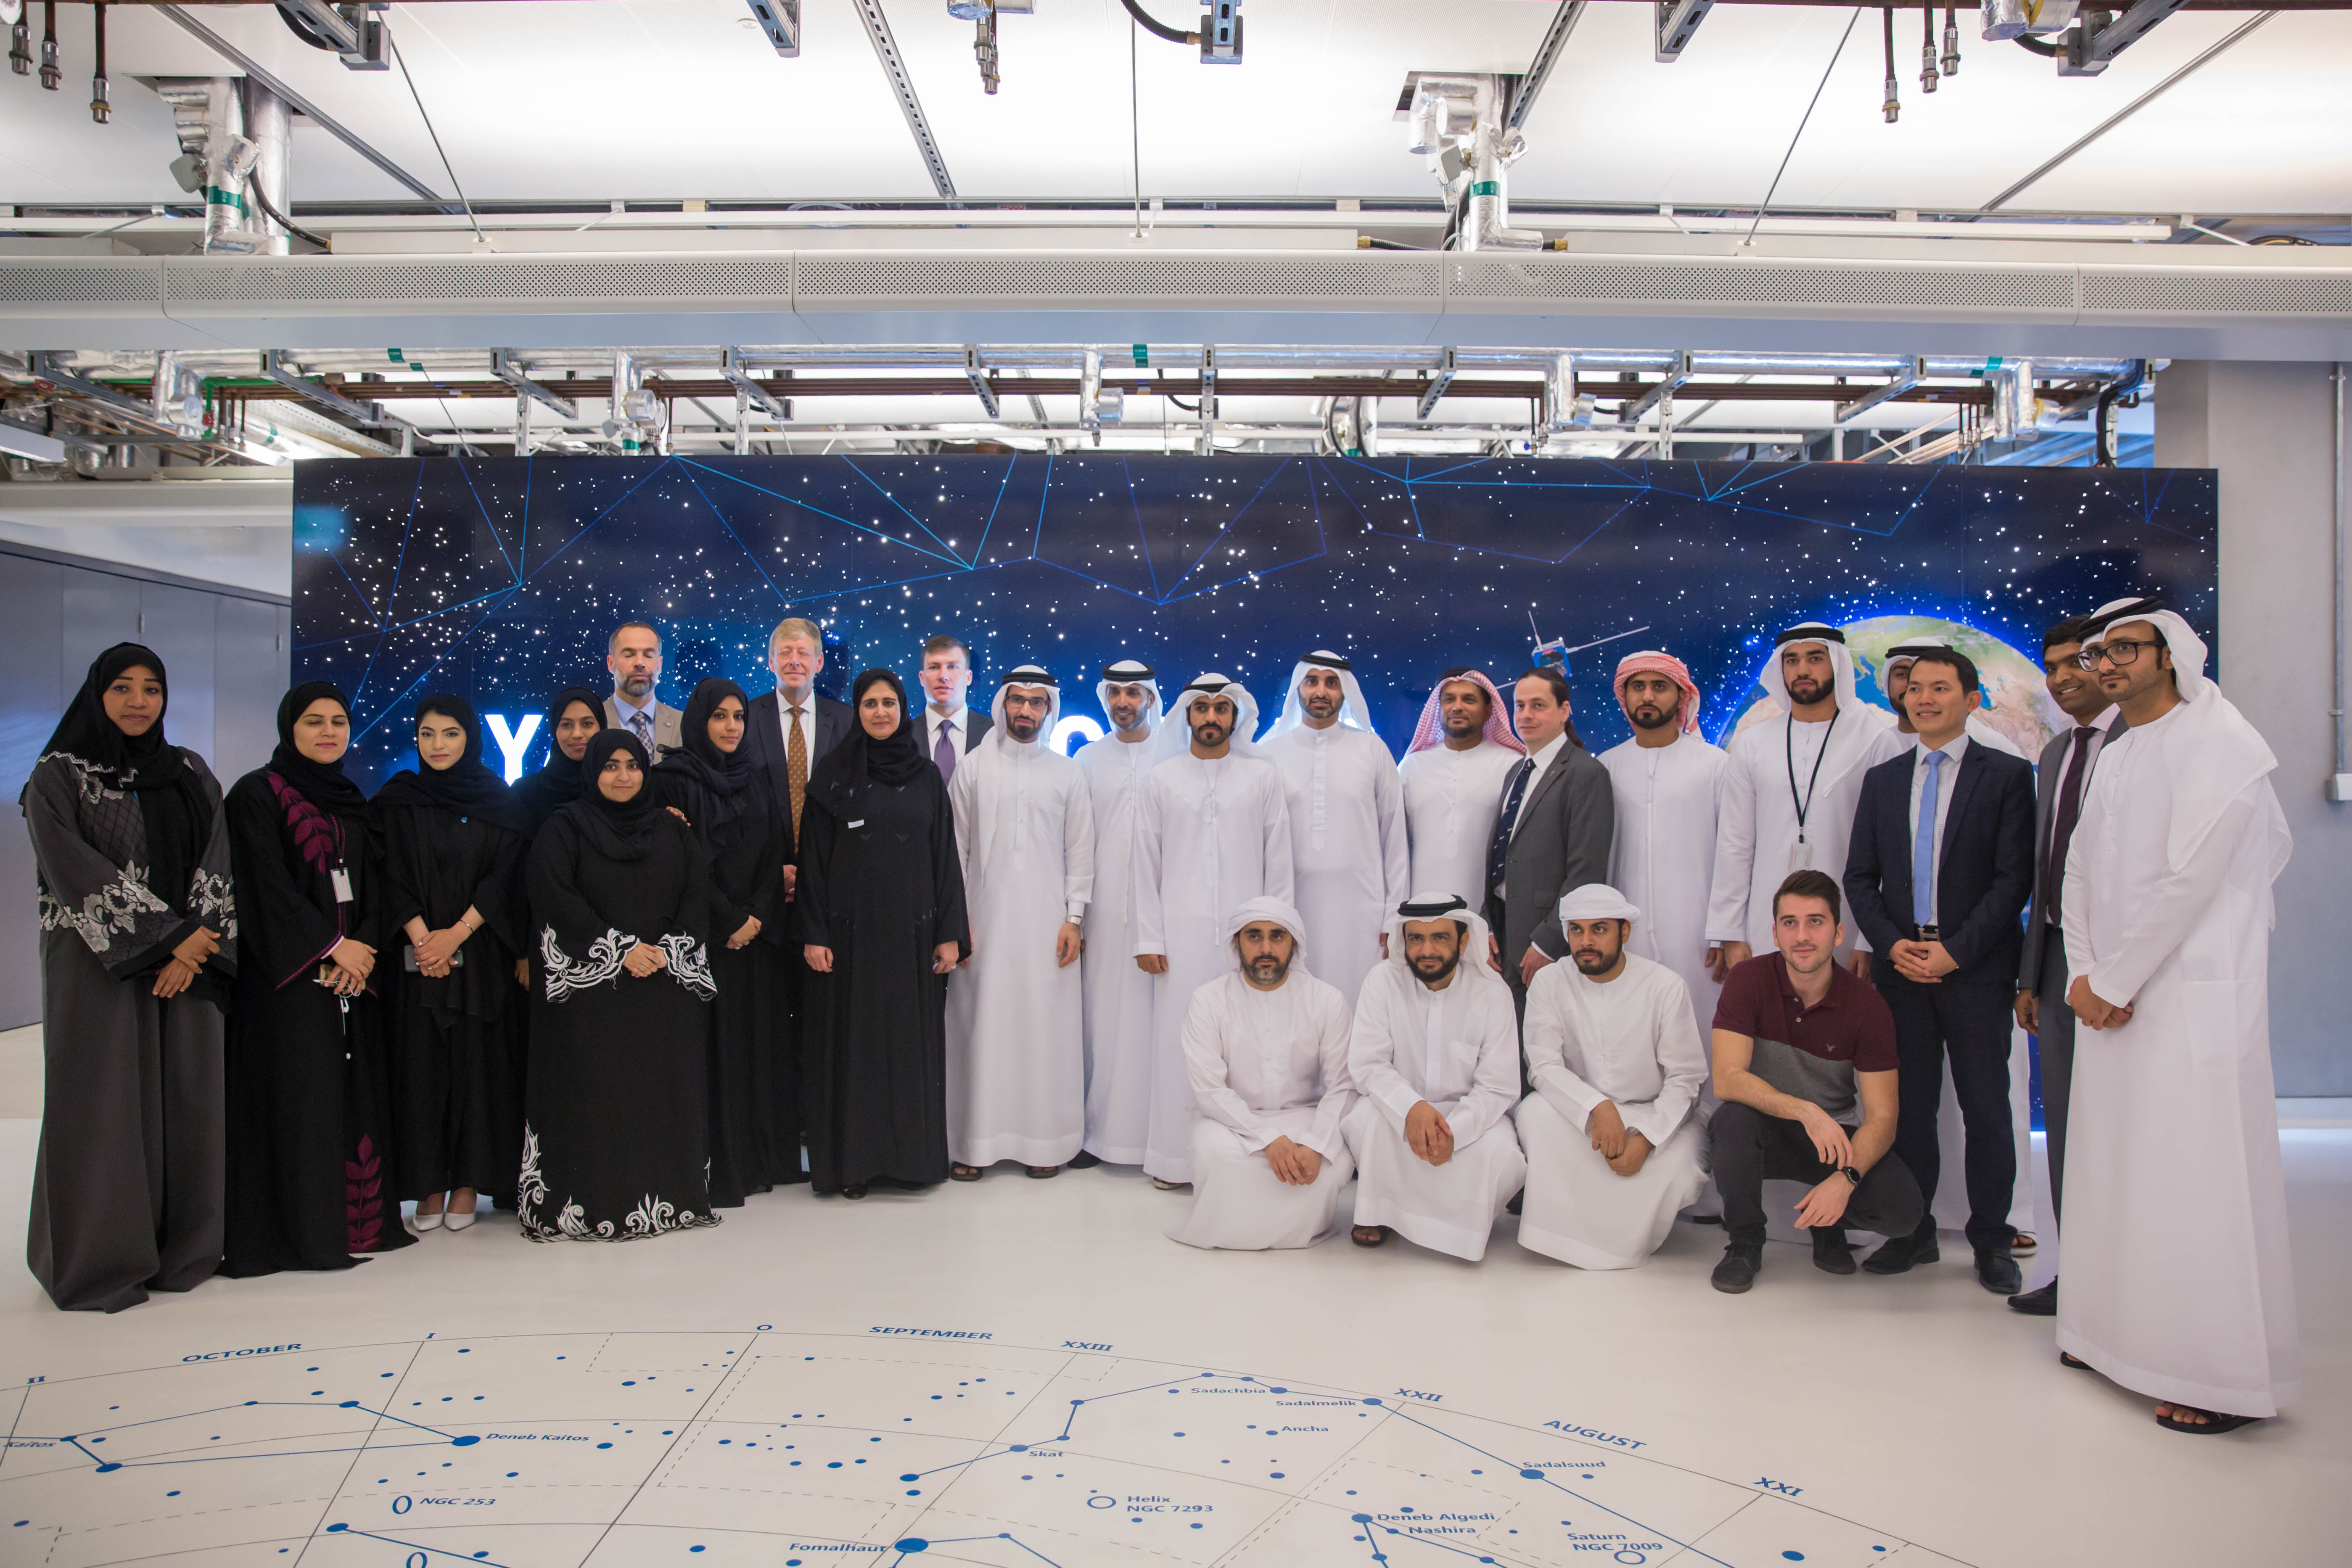 3 yahsat space laboratory launched at masdar institute